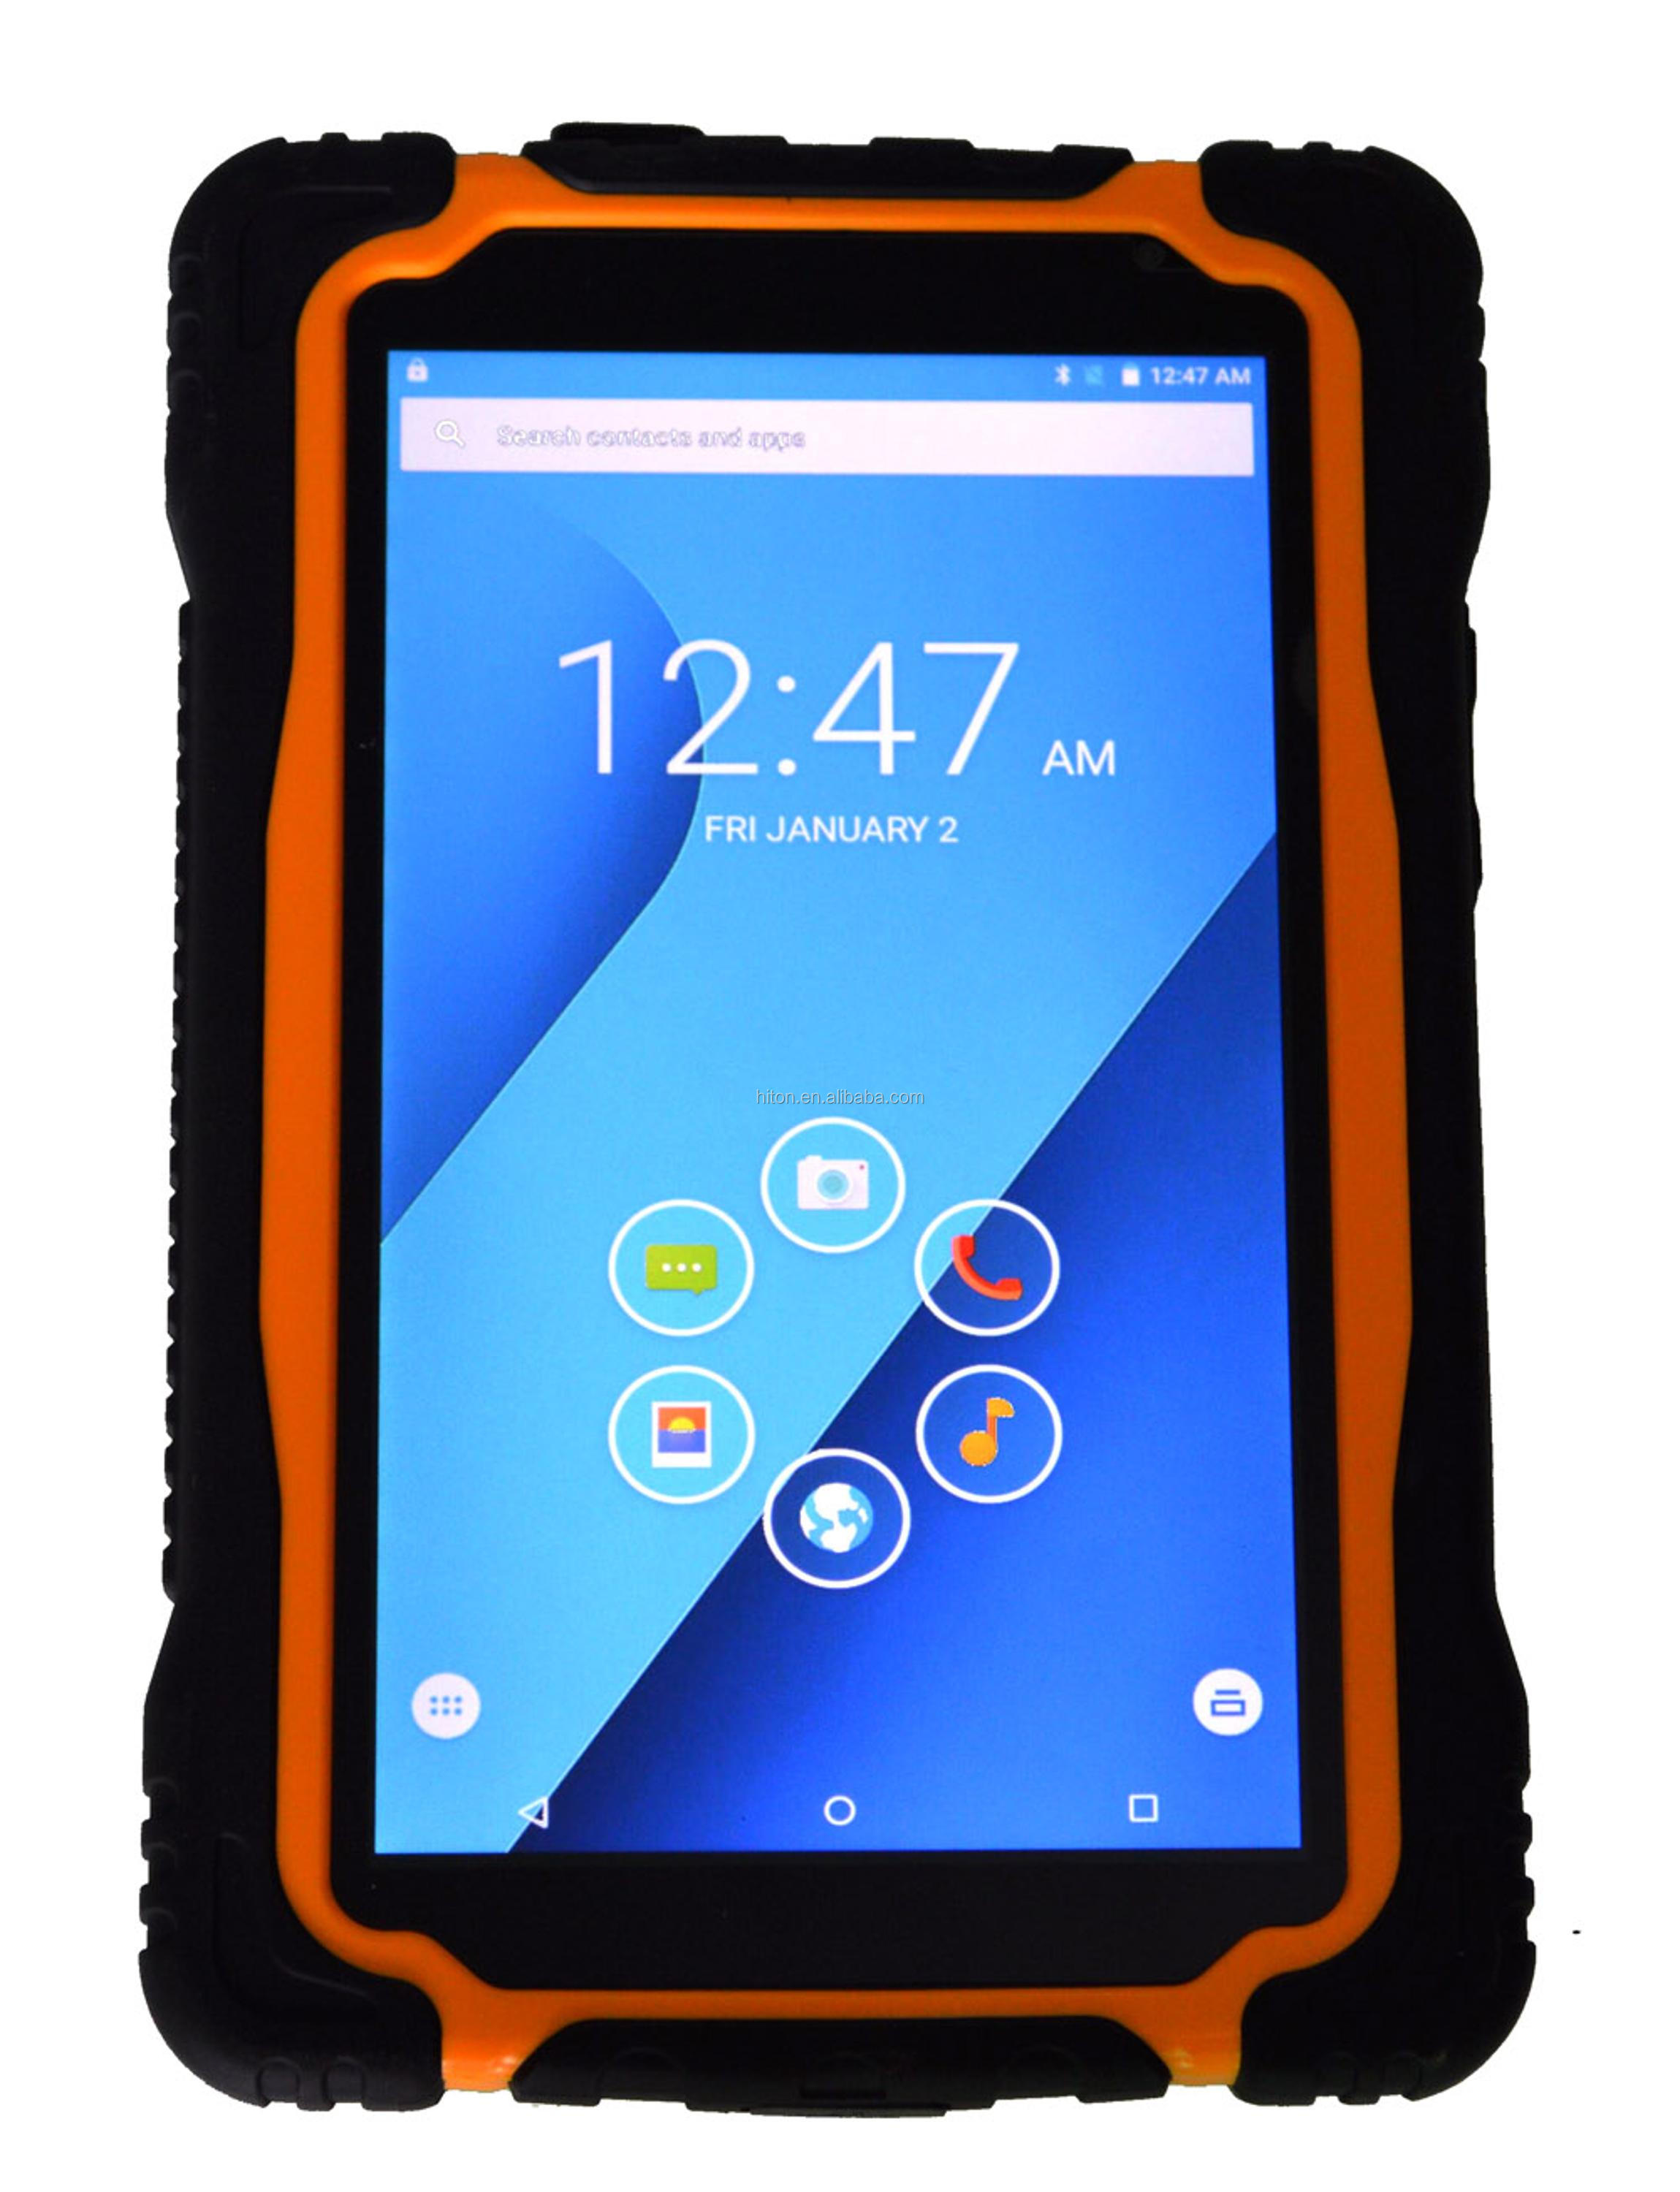 Factory cheapest 7inch Android 4G LTE outdoor waterproof tablet pc NFC UHF RFID rugged tablet computer with GPS GLONASS RFID